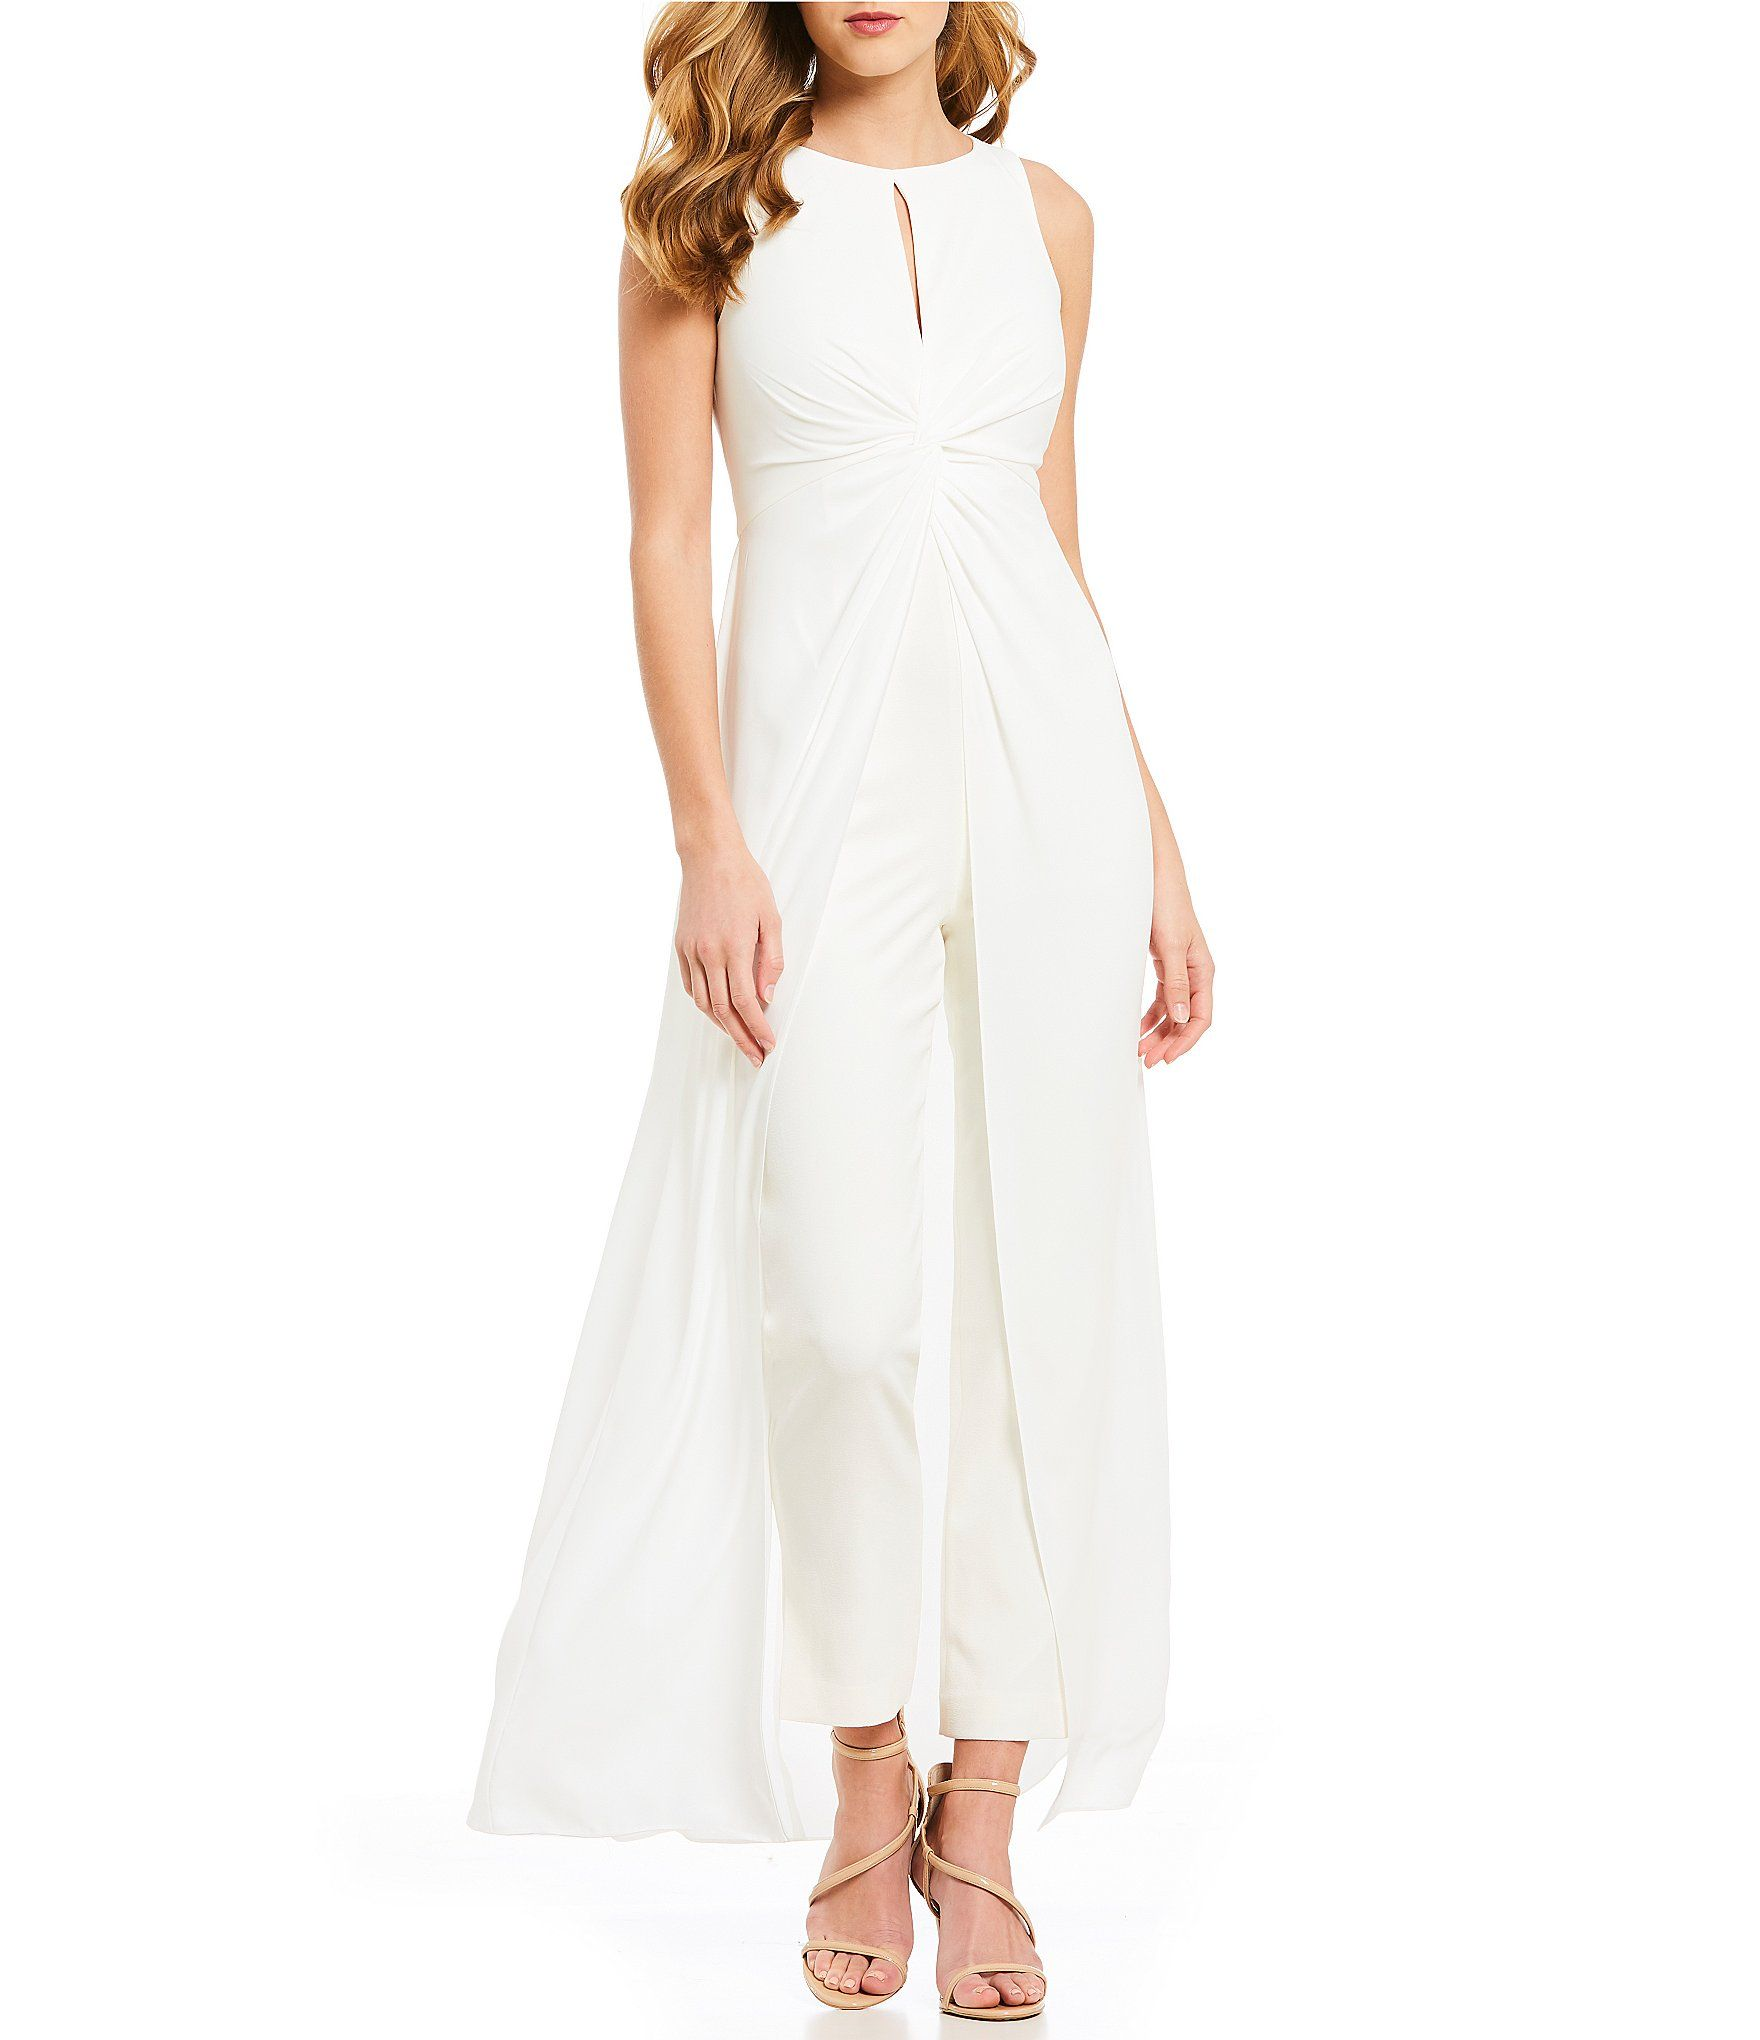 Shop For Vince Camuto Overlay Jumpsuit At Dillards Com Visit Dillards Com To Find Clothing Accessories Jumpsuits For Women Rompers Womens Jumpsuit Jumpsuit [ 2040 x 1760 Pixel ]